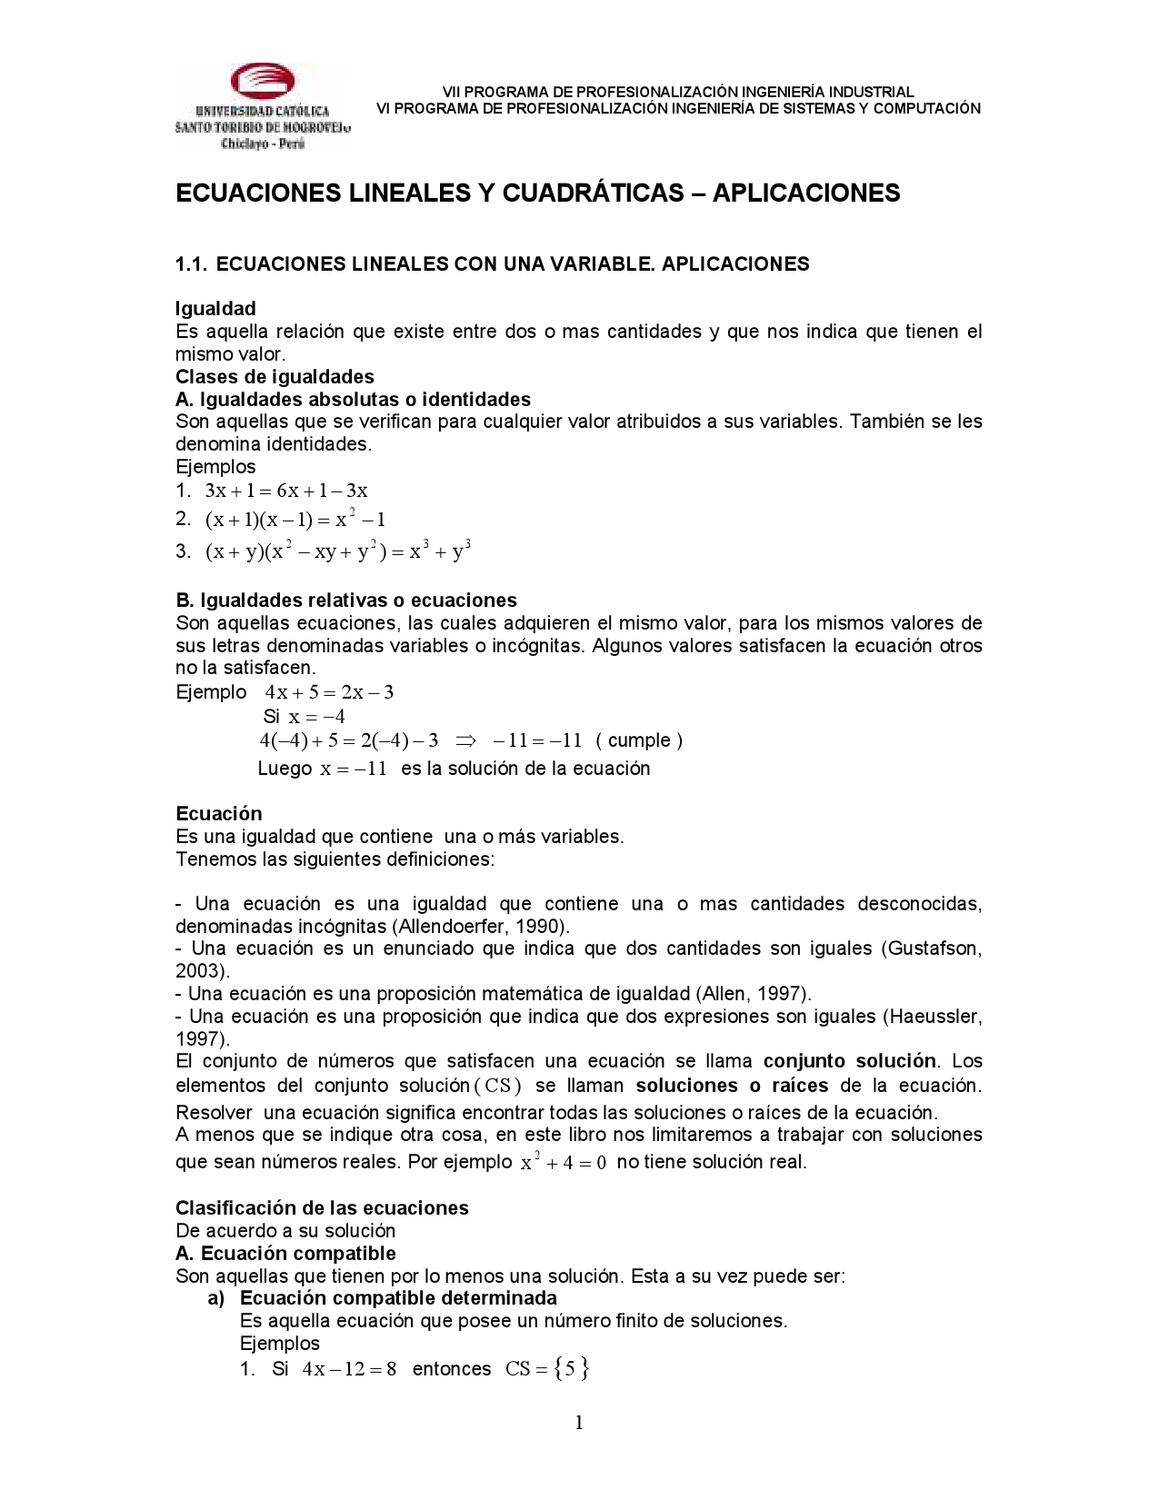 ECUACIONES LINEALES Y CUADRATICAS by David Gonzales - issuu